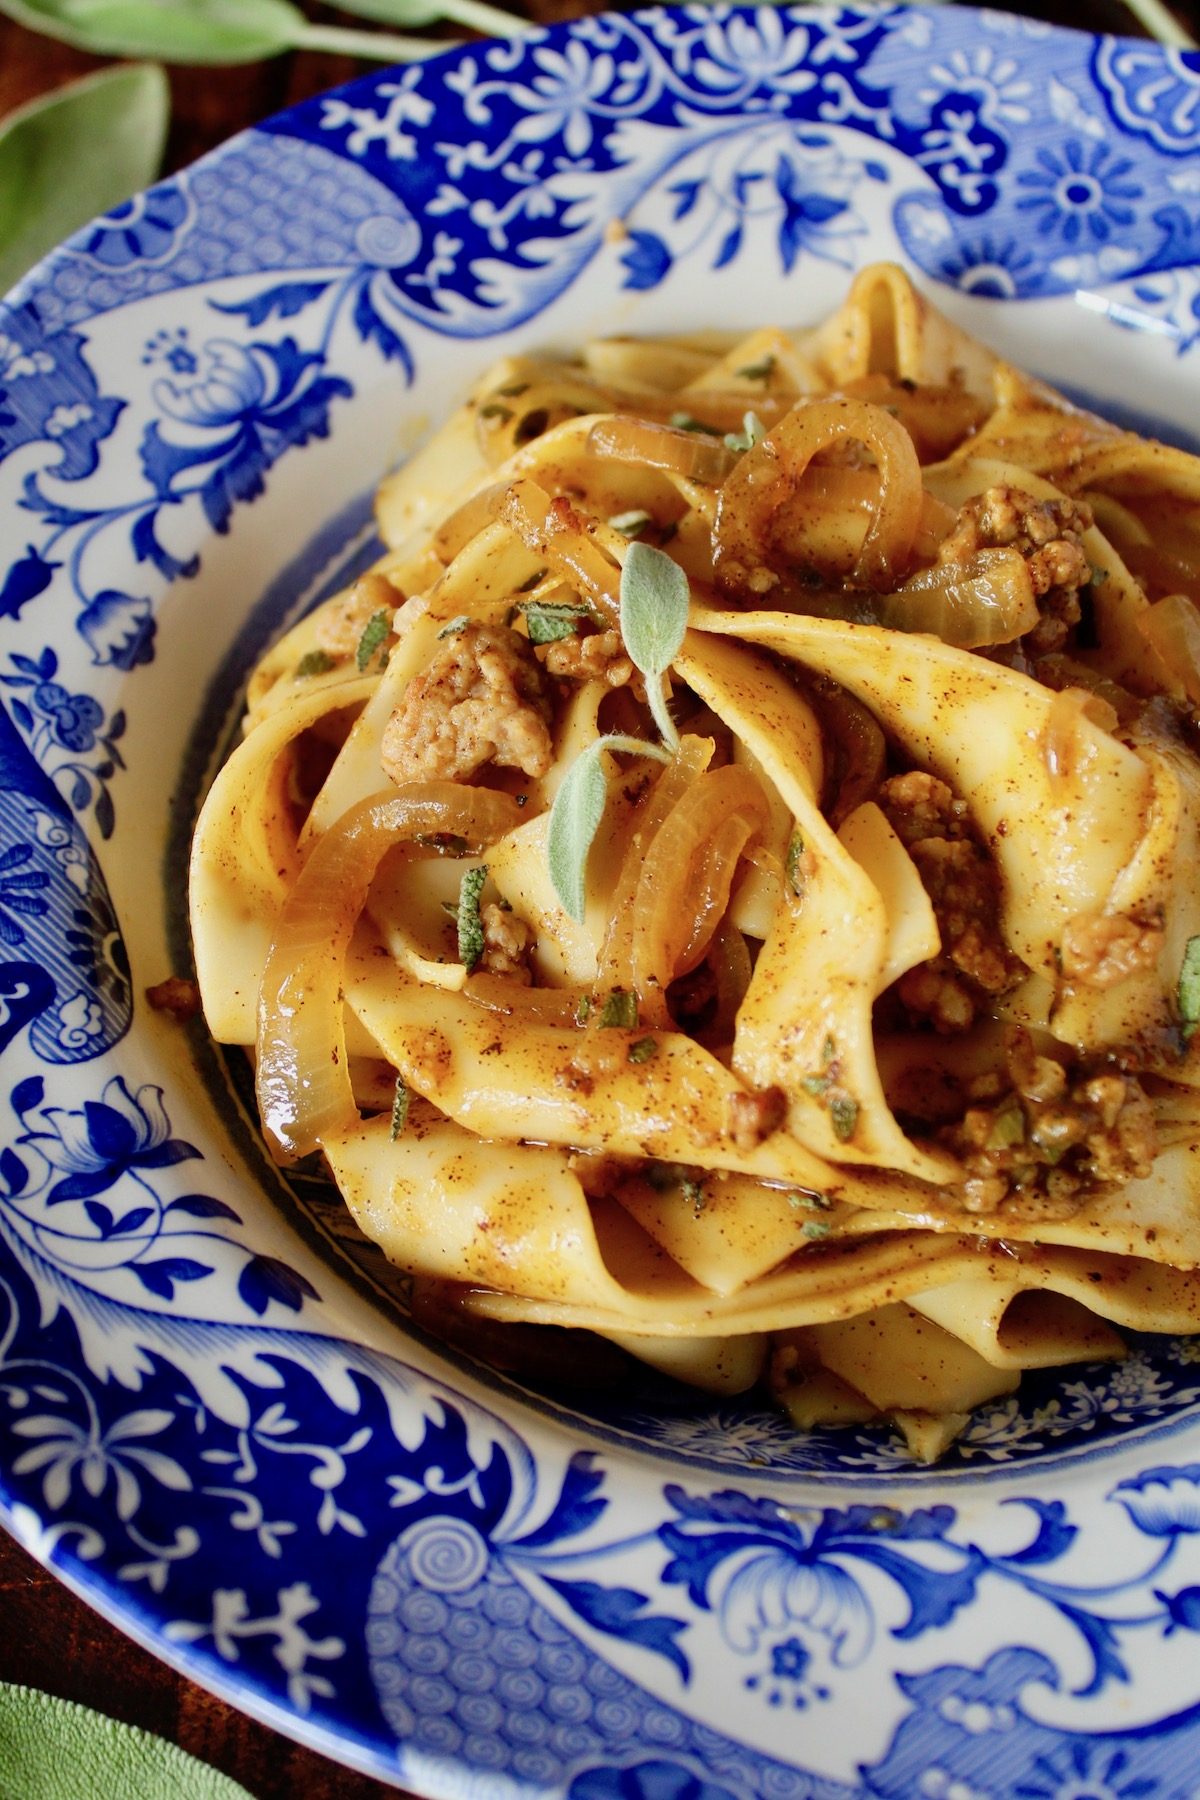 Pumpkin Pasta with Sausage mixed into Pappardelle in a blue and white bowl